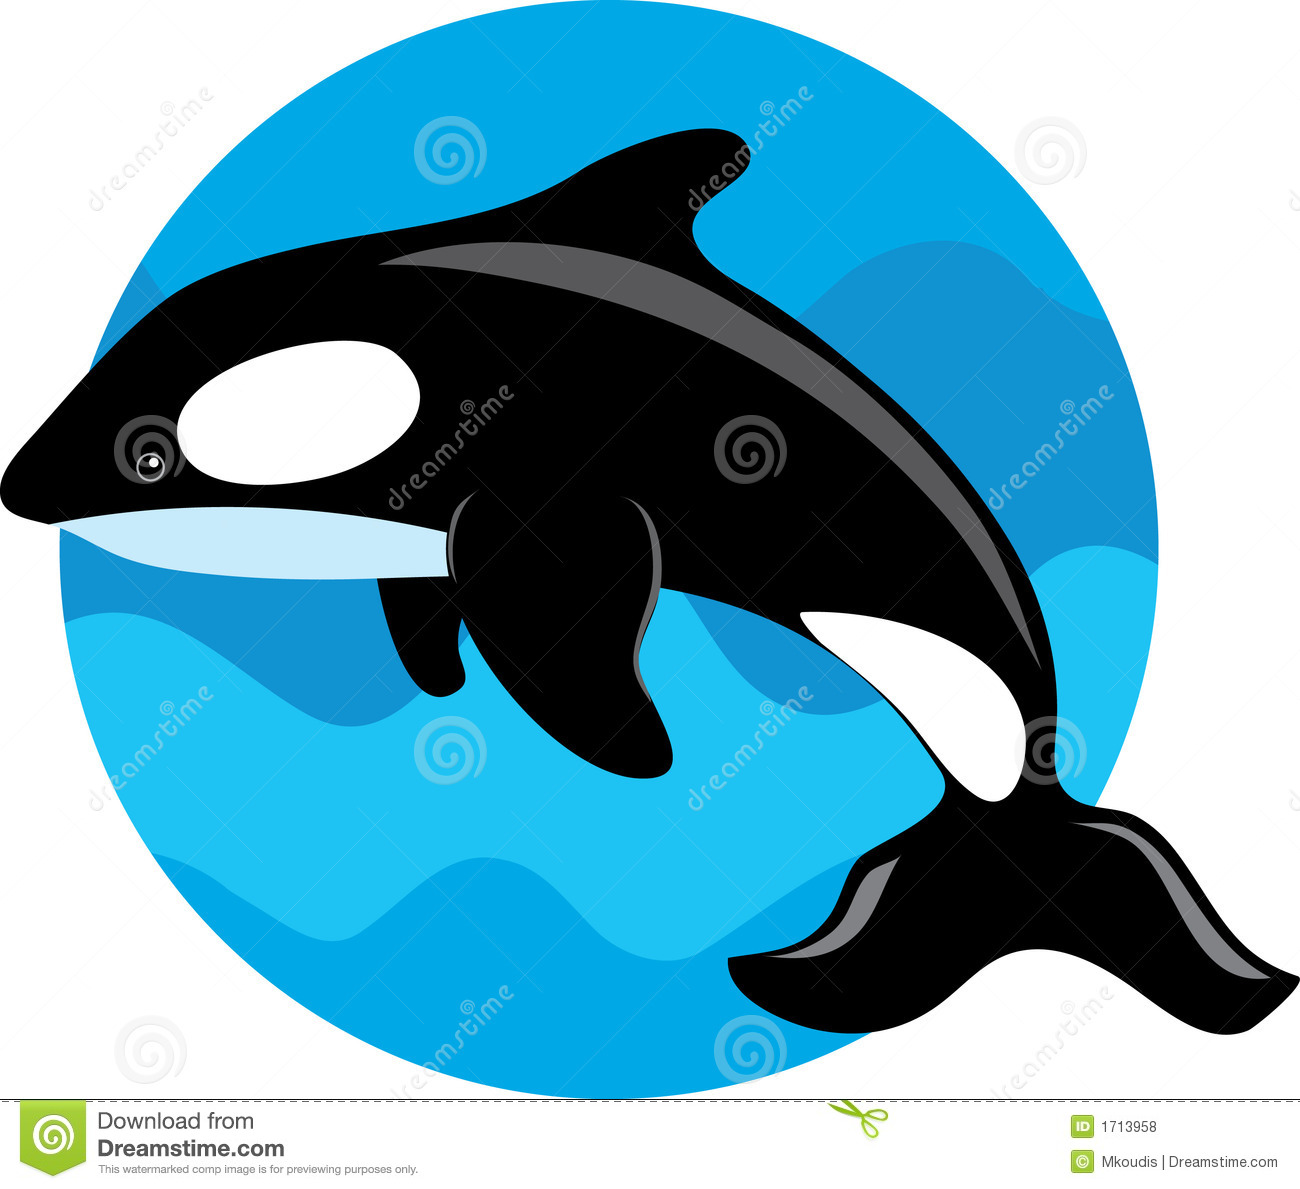 Orca Whale Royalty Free Stock Photos - Image: 1713958